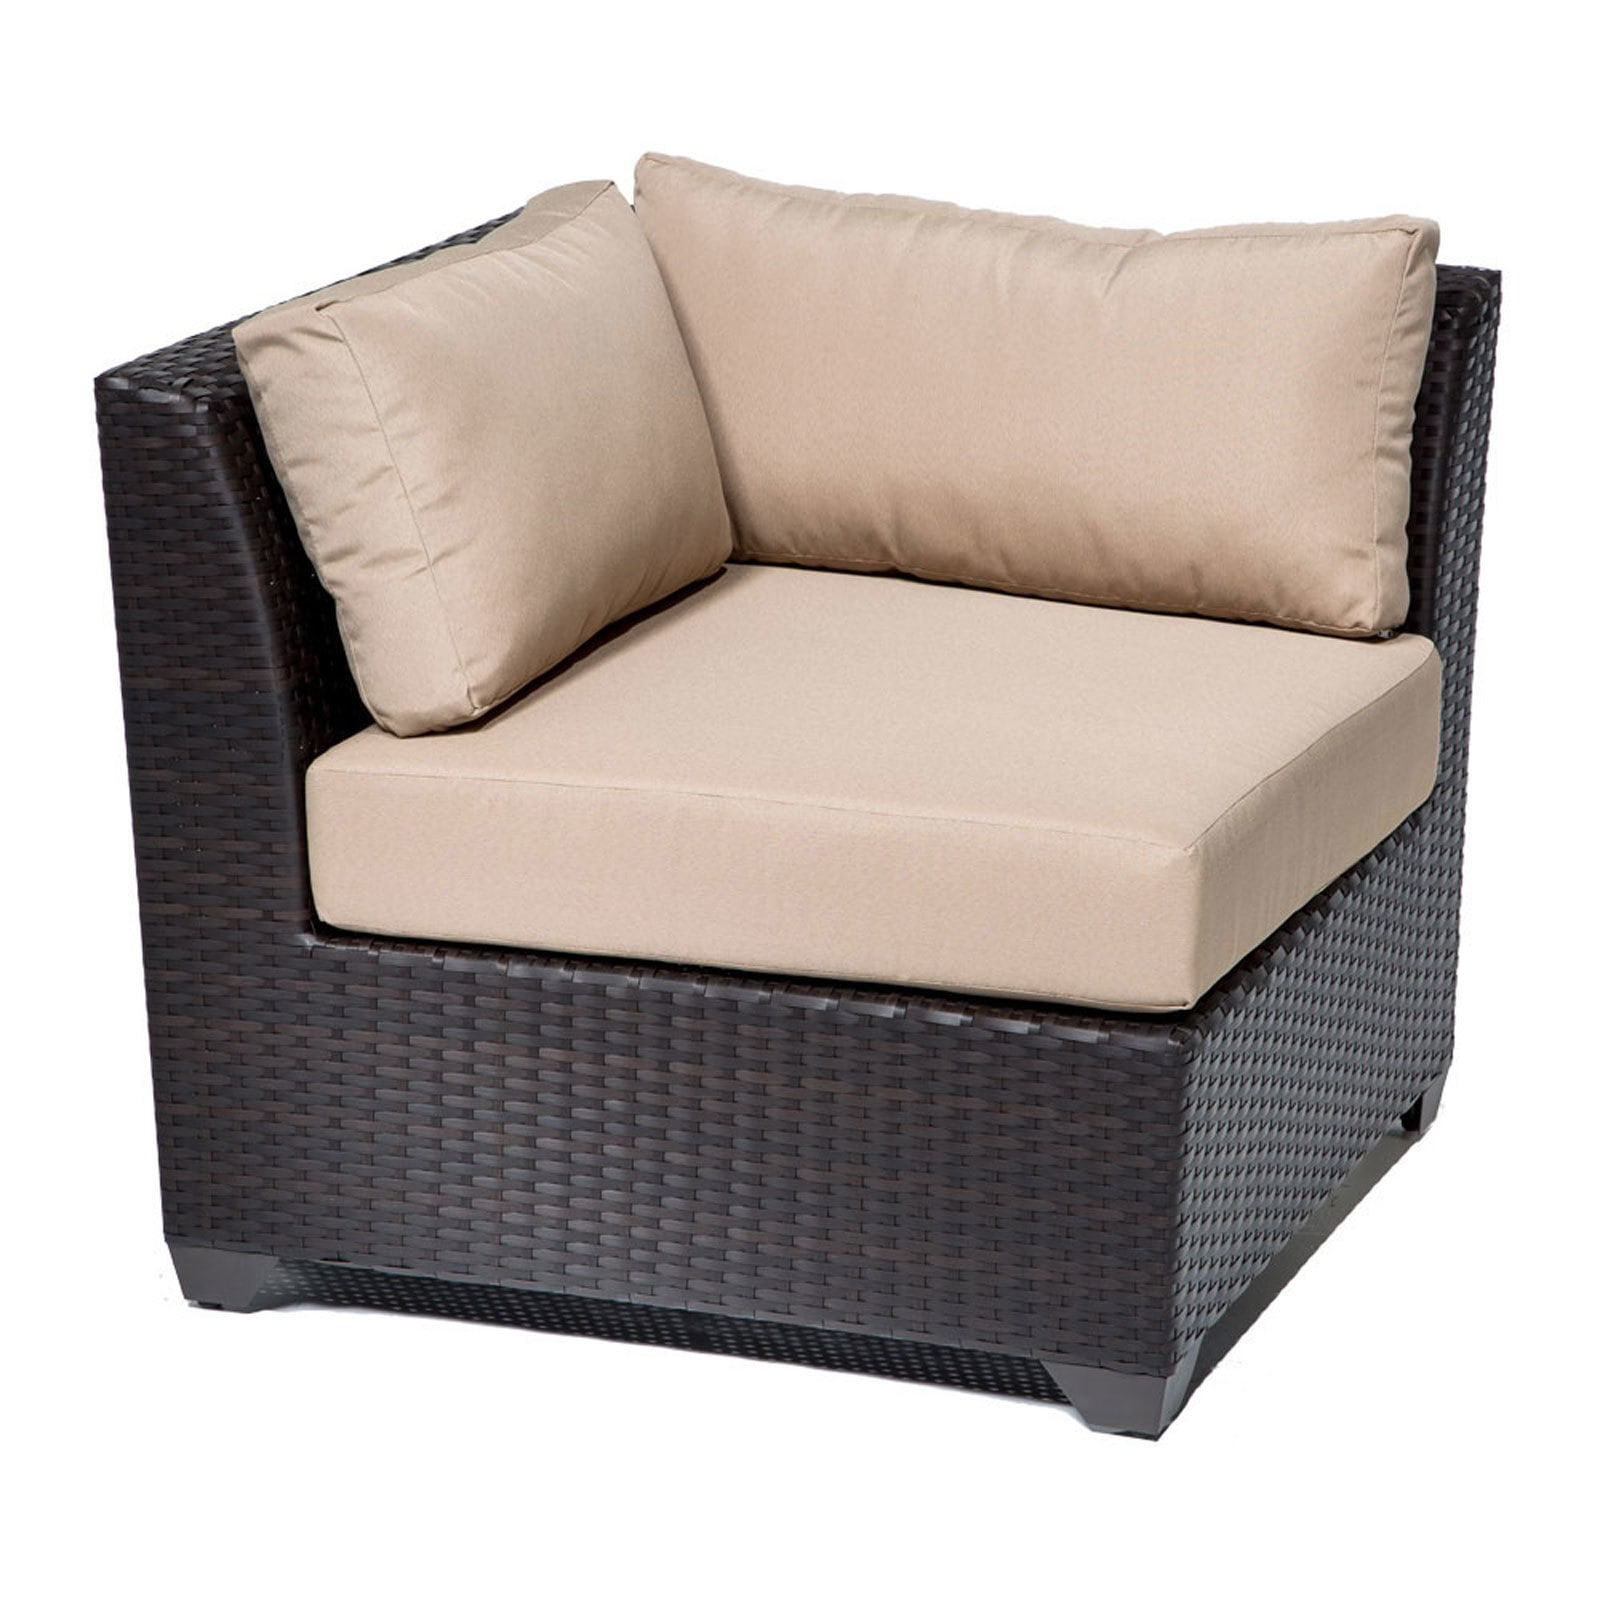 TK Classics Barbados Collection Outdoor Wicker Patio Furniture Set